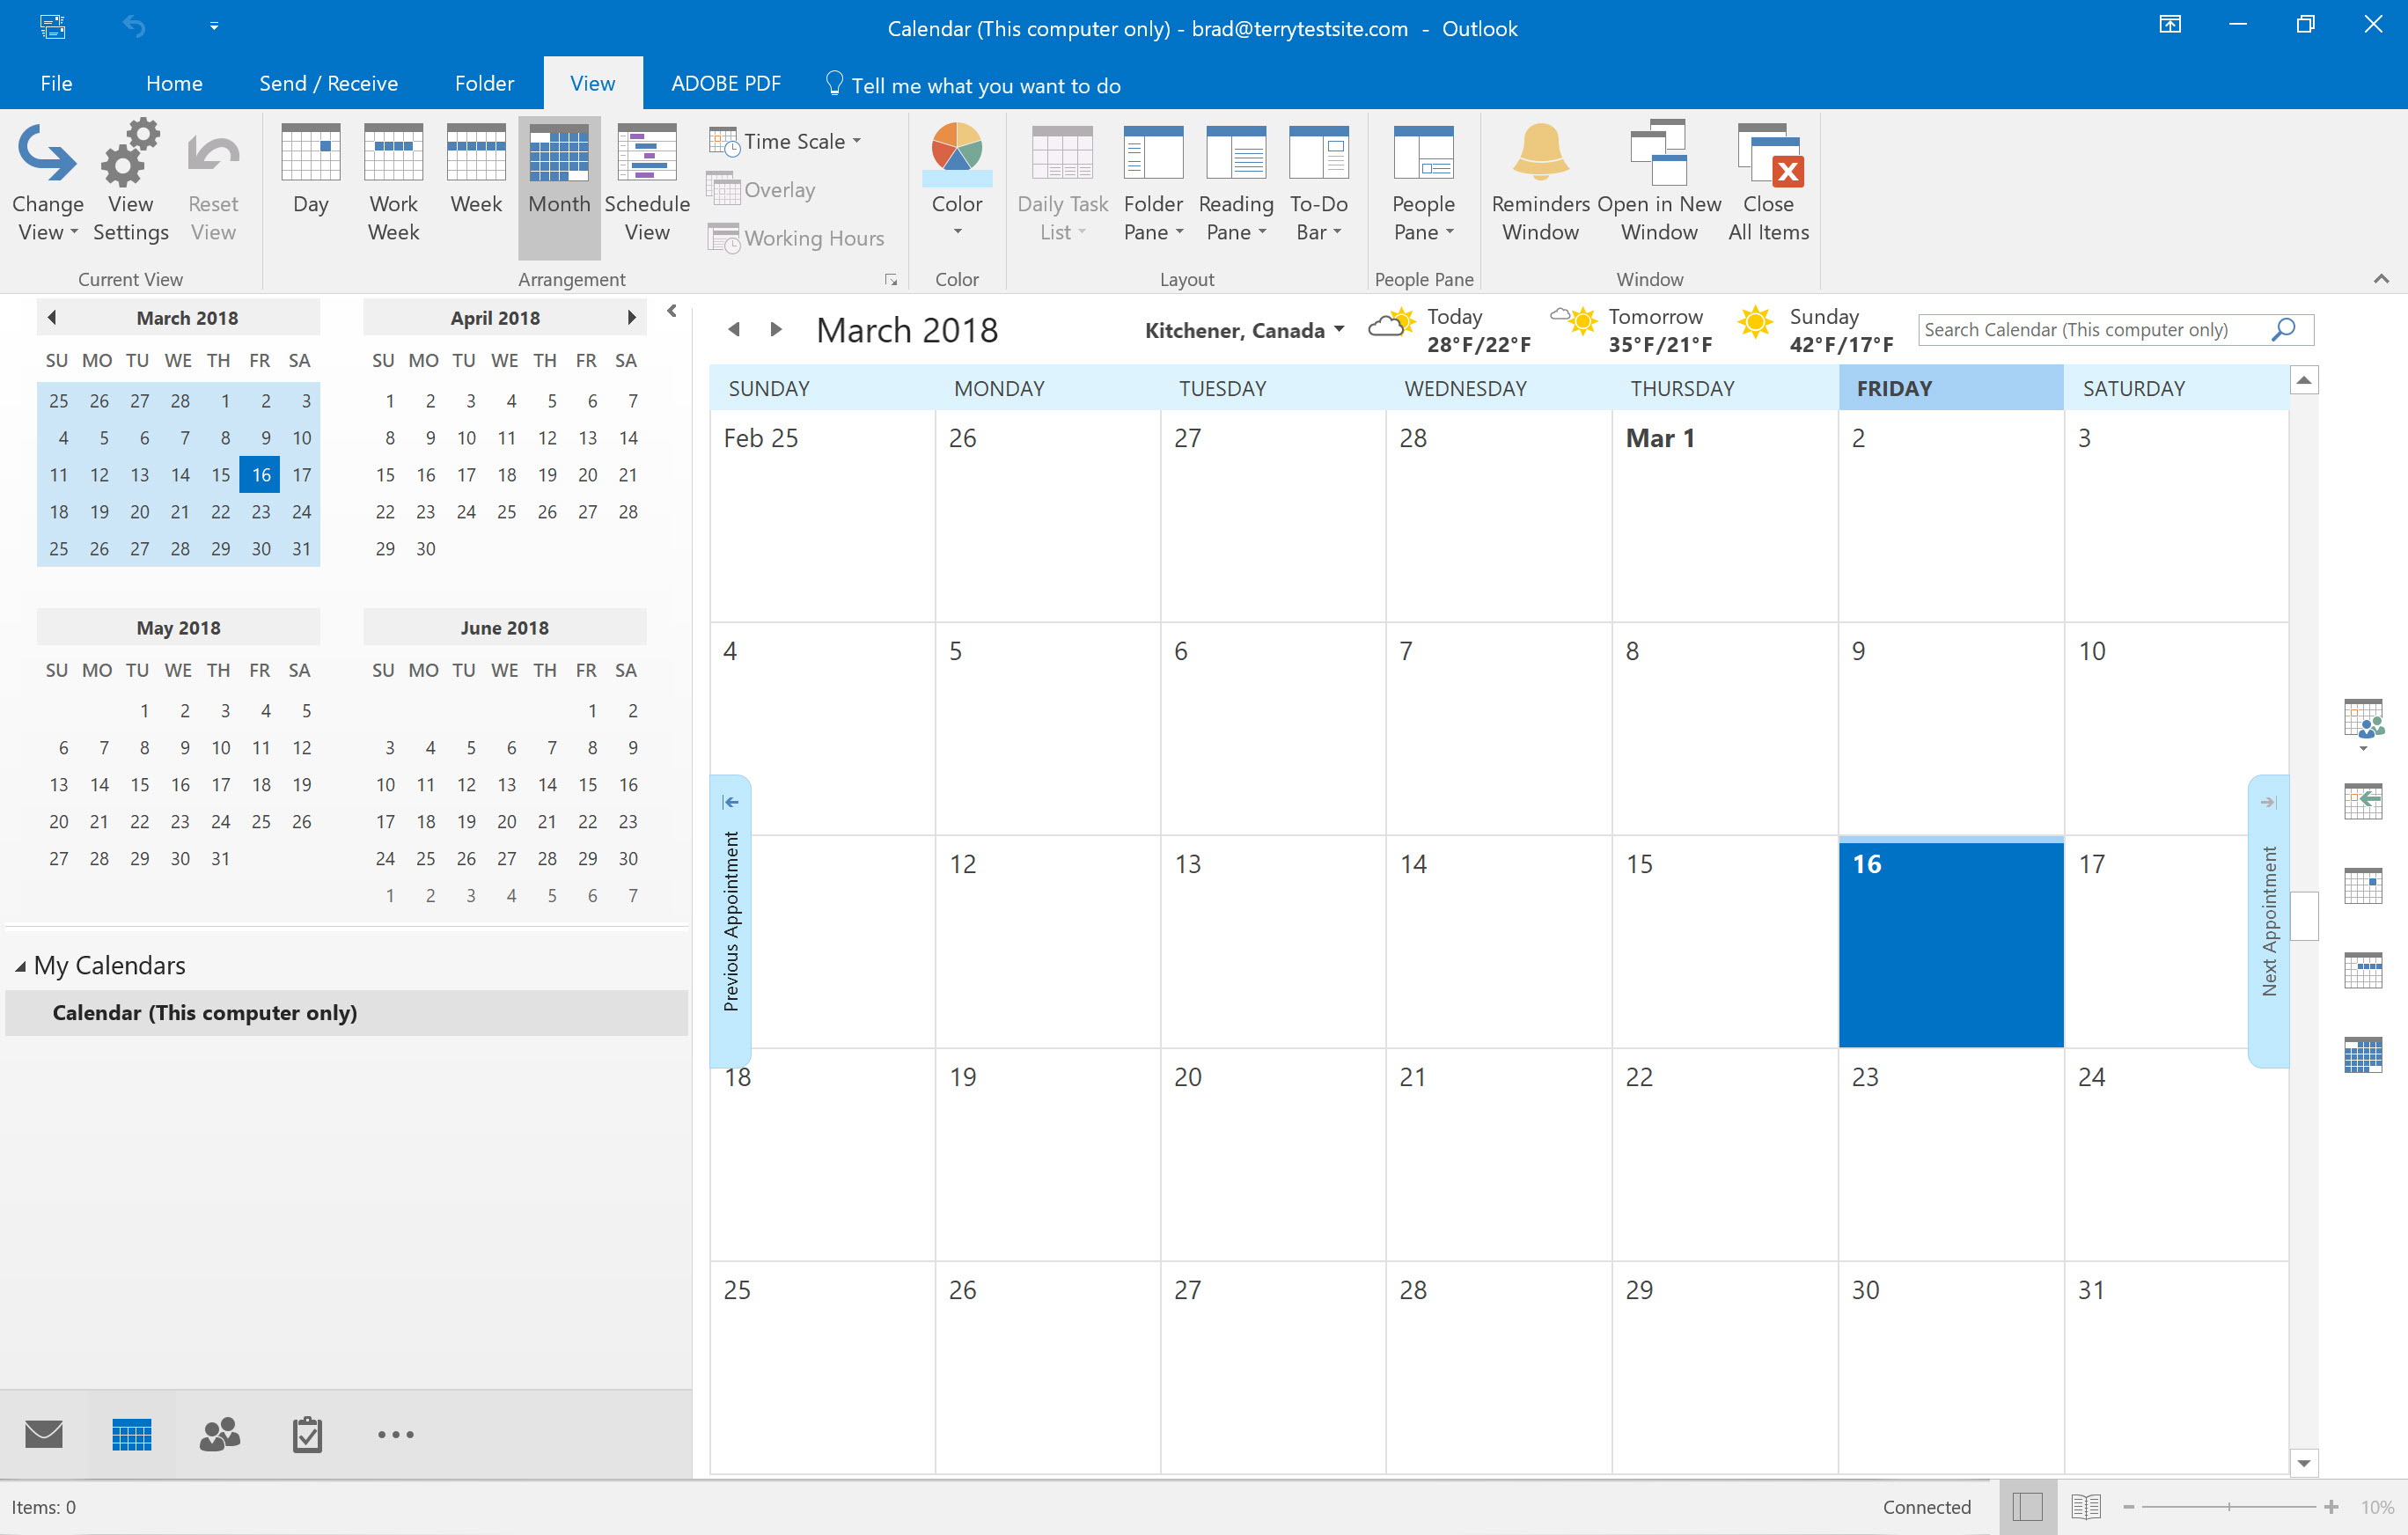 How To View And Customise Calendars In Outlook 2016 within View Calendar In Outlook 2016